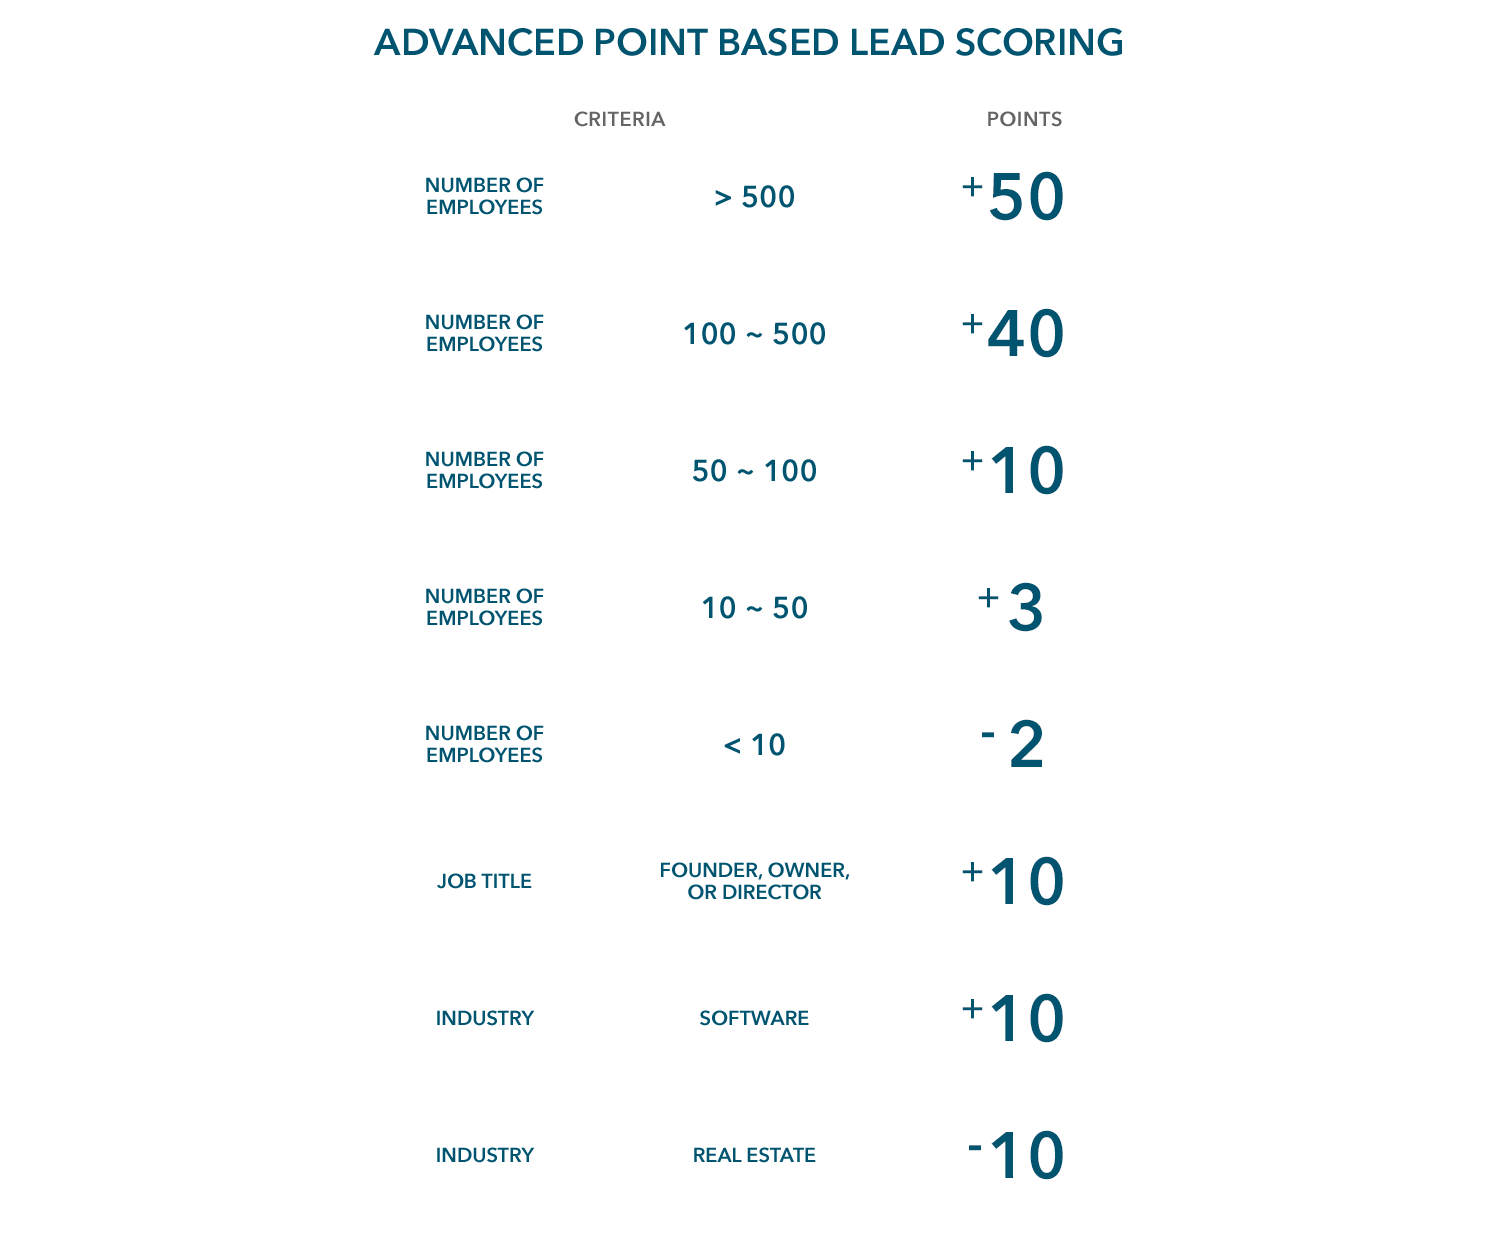 advanced-point-based-lead-scoring@1x